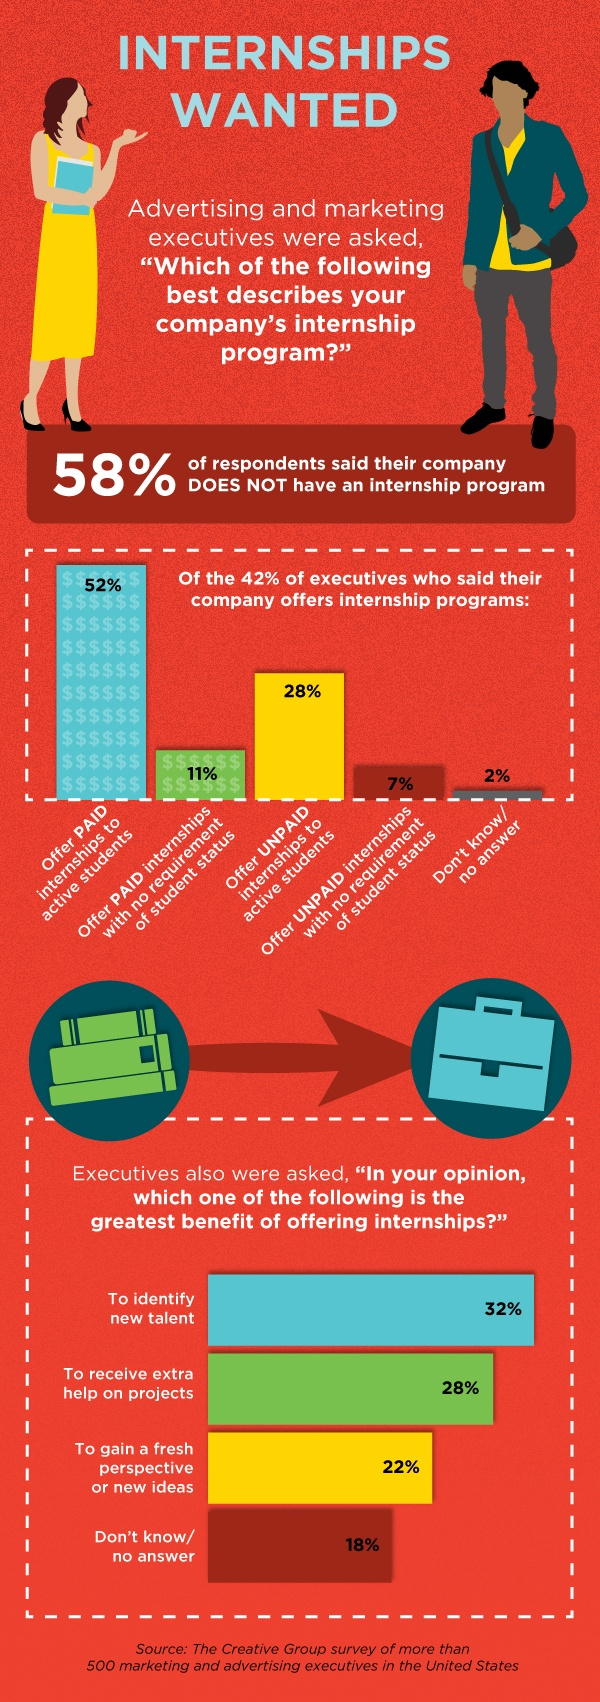 73 best Workplace News images on Pinterest   Infographic ...